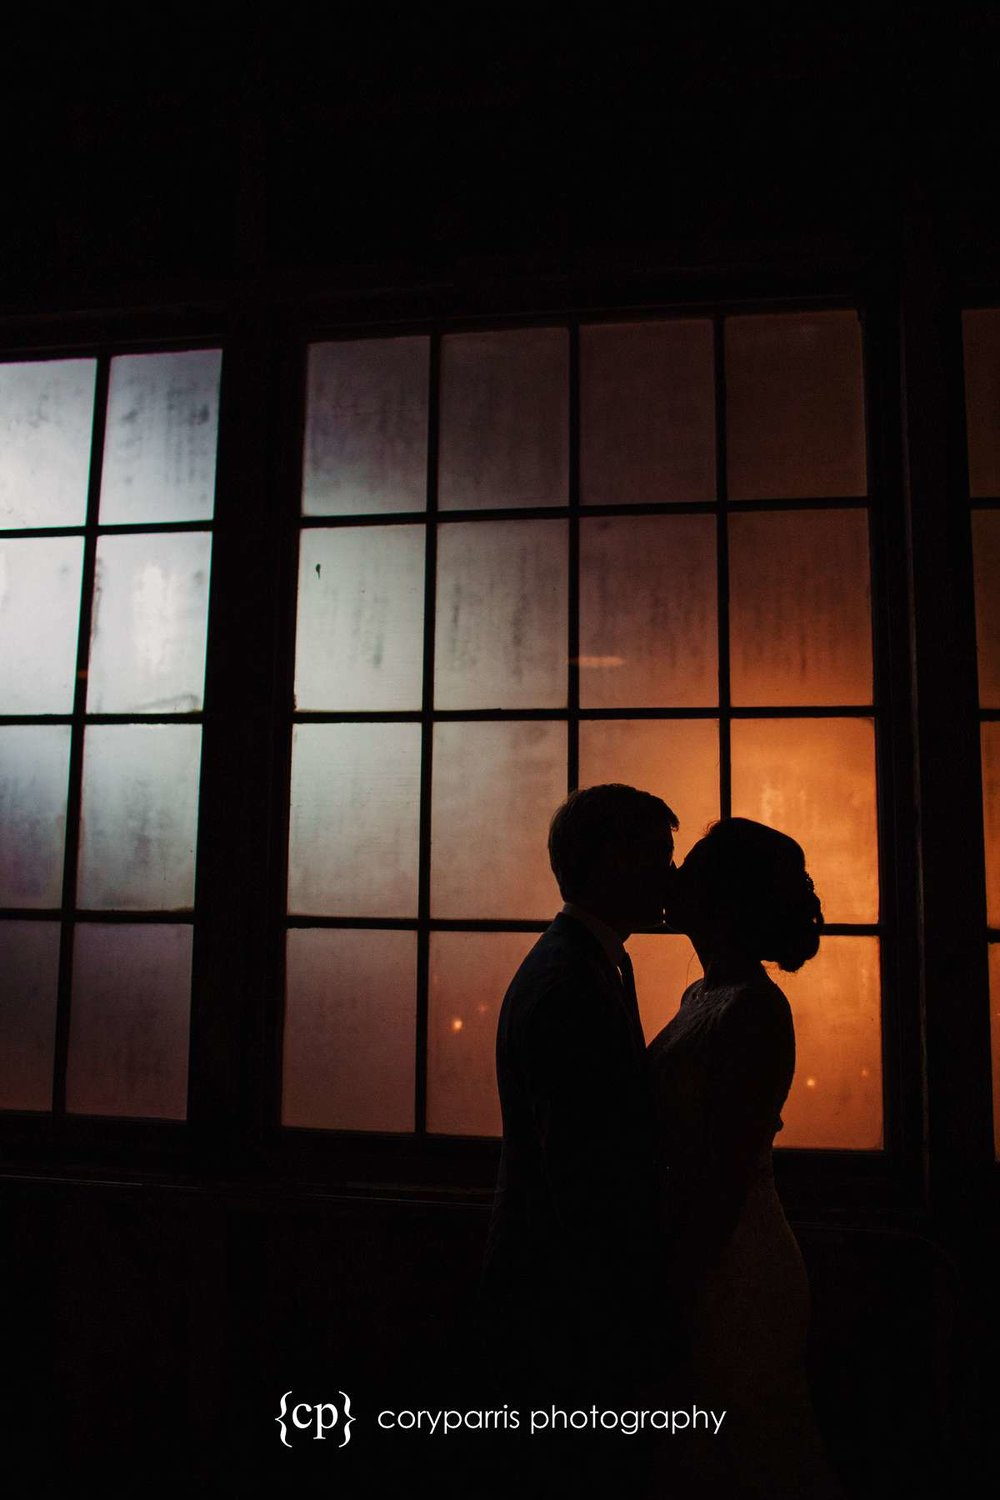 Incredible window for silhouette portrait